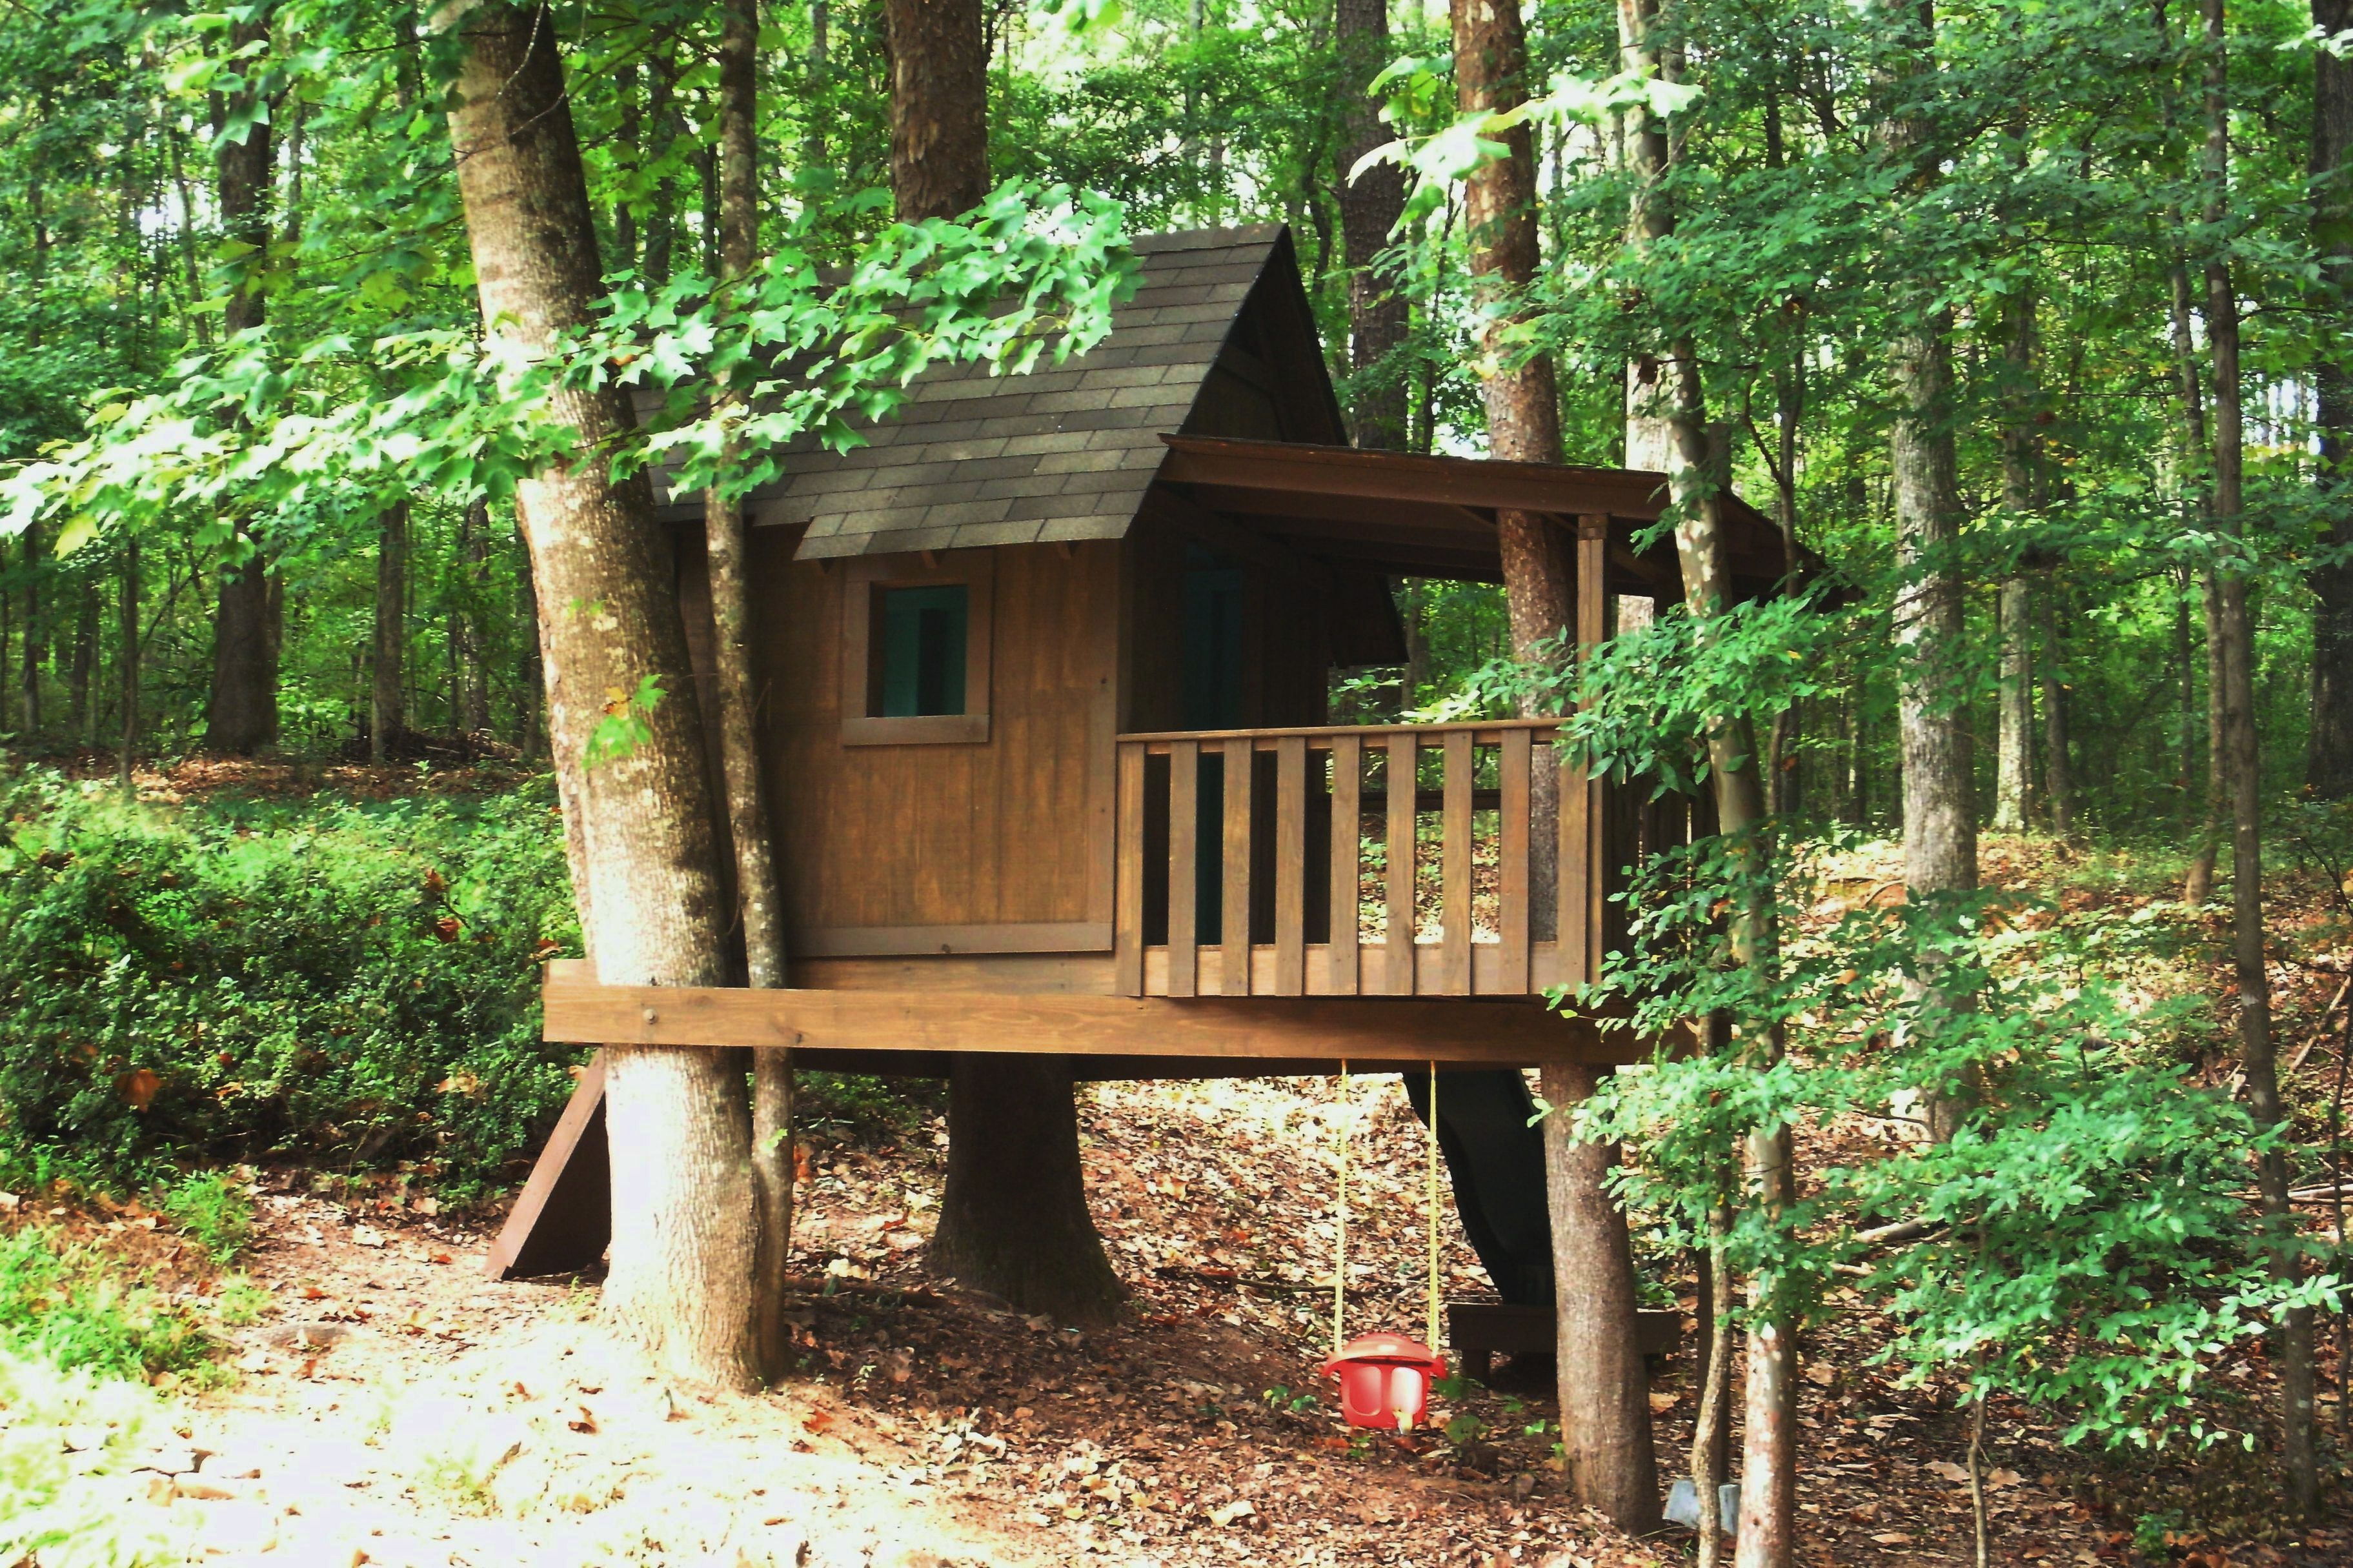 Tree houses for kids tree house opera evocata ideas for Tree house ideas plans